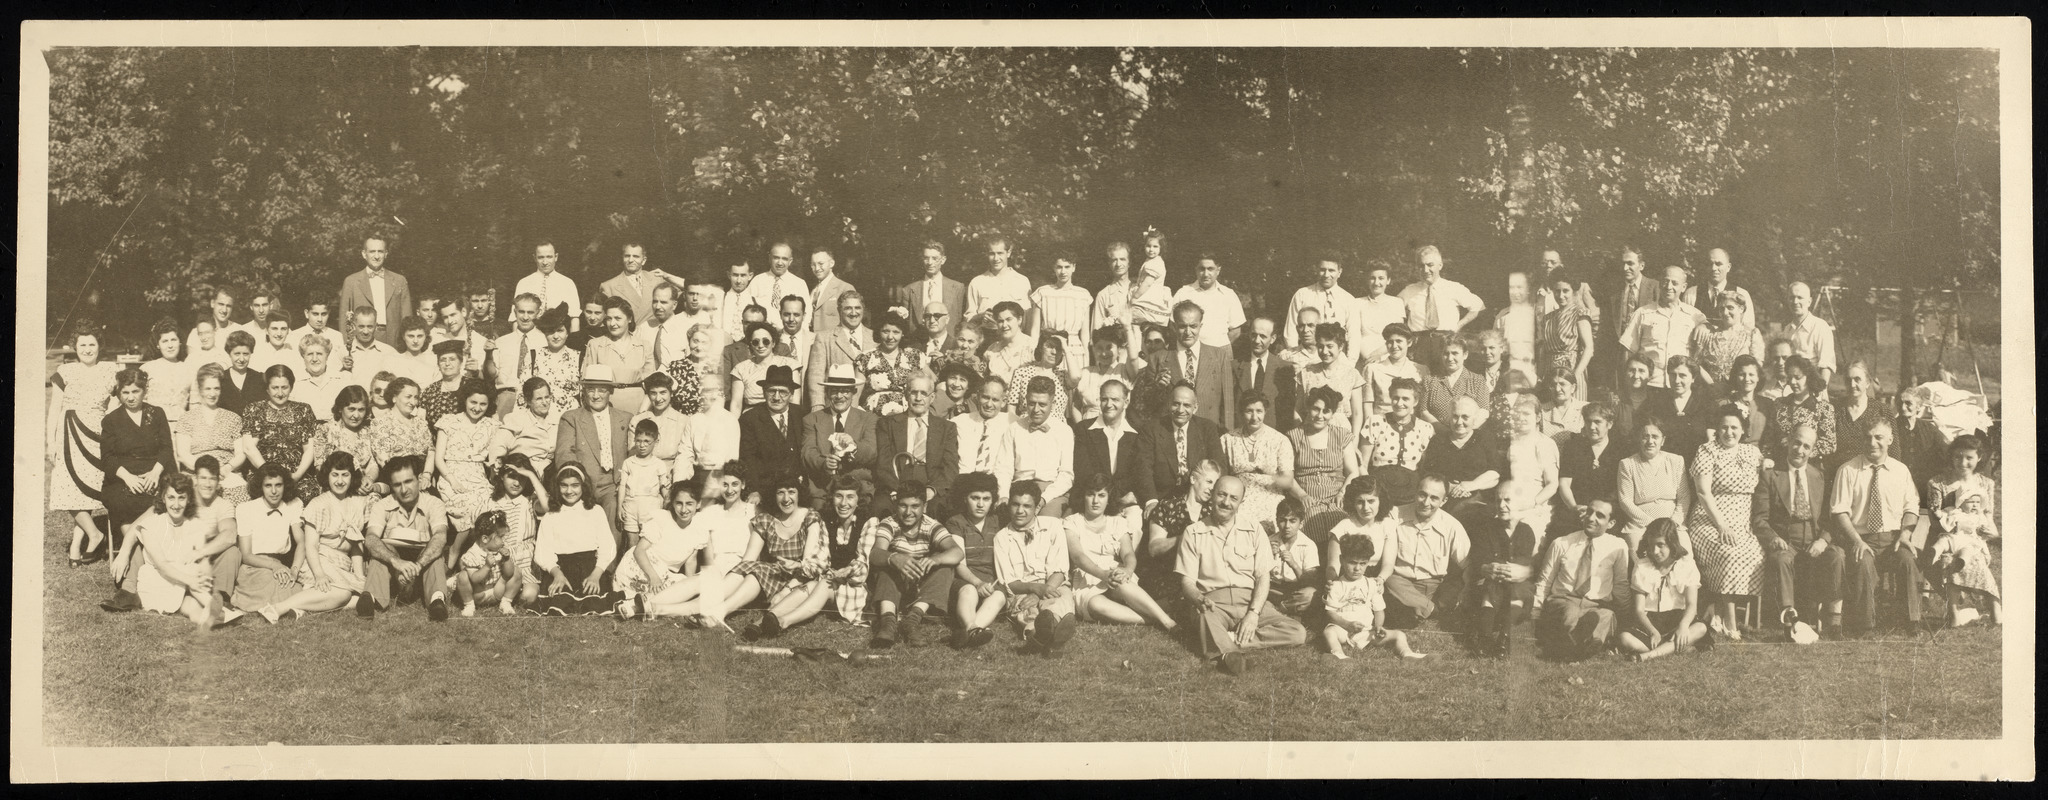 Unidentified group at a picnic